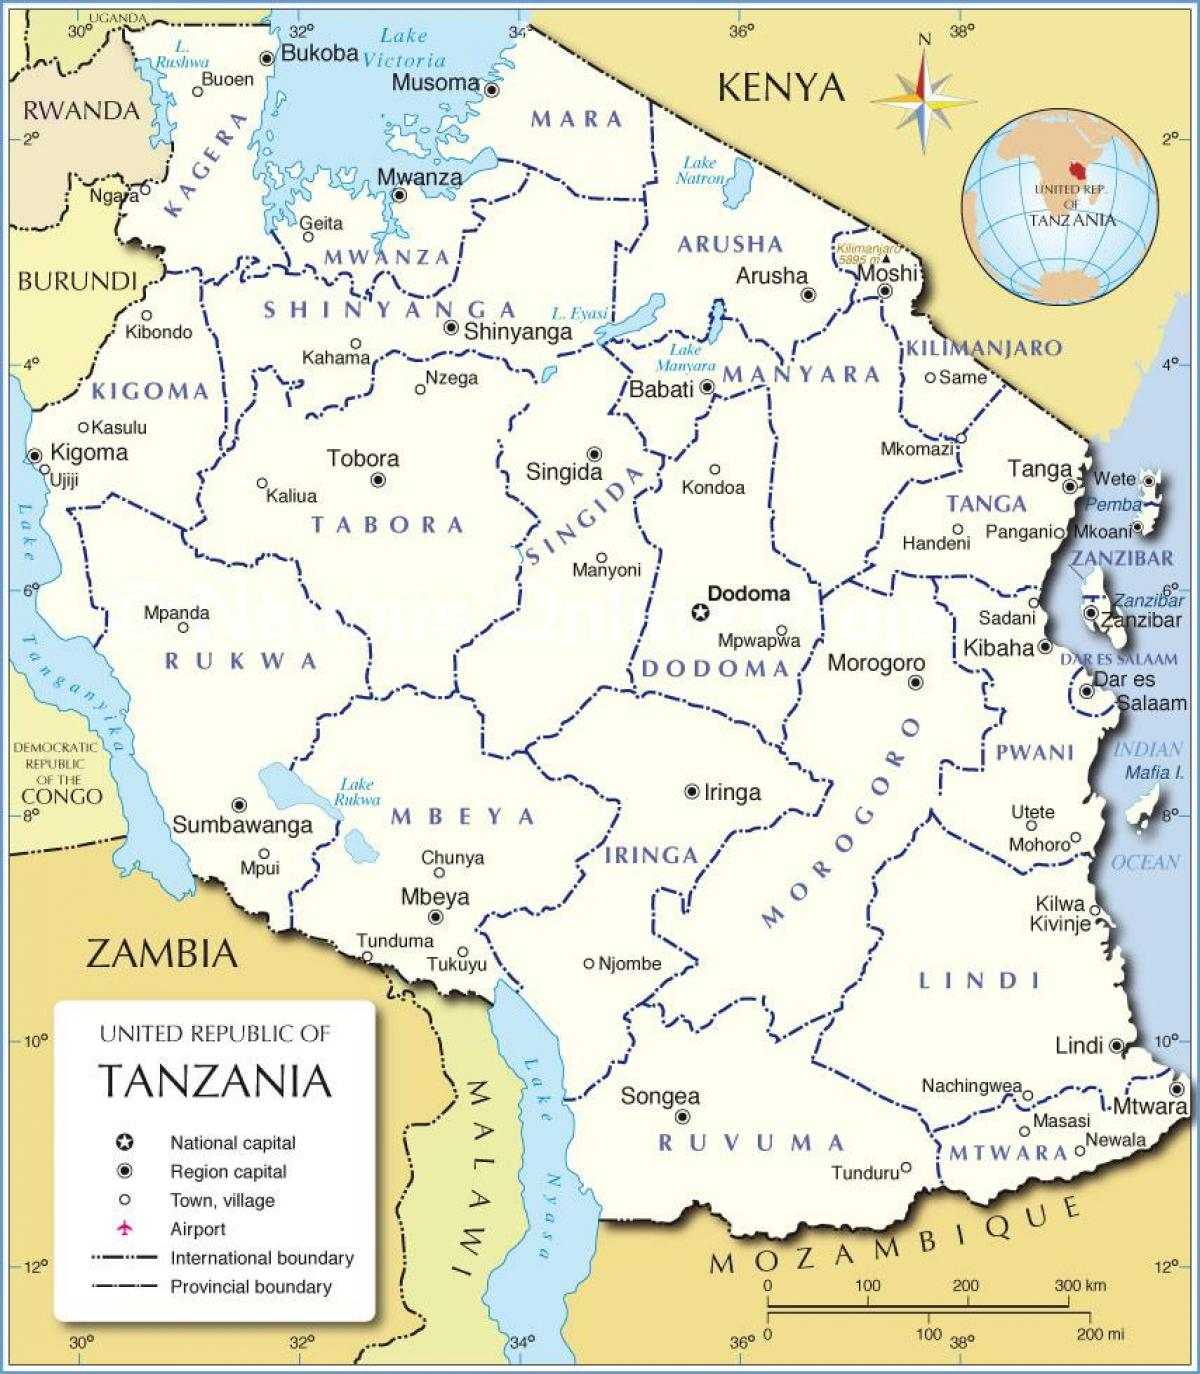 Carte de la tanzanie avec le district